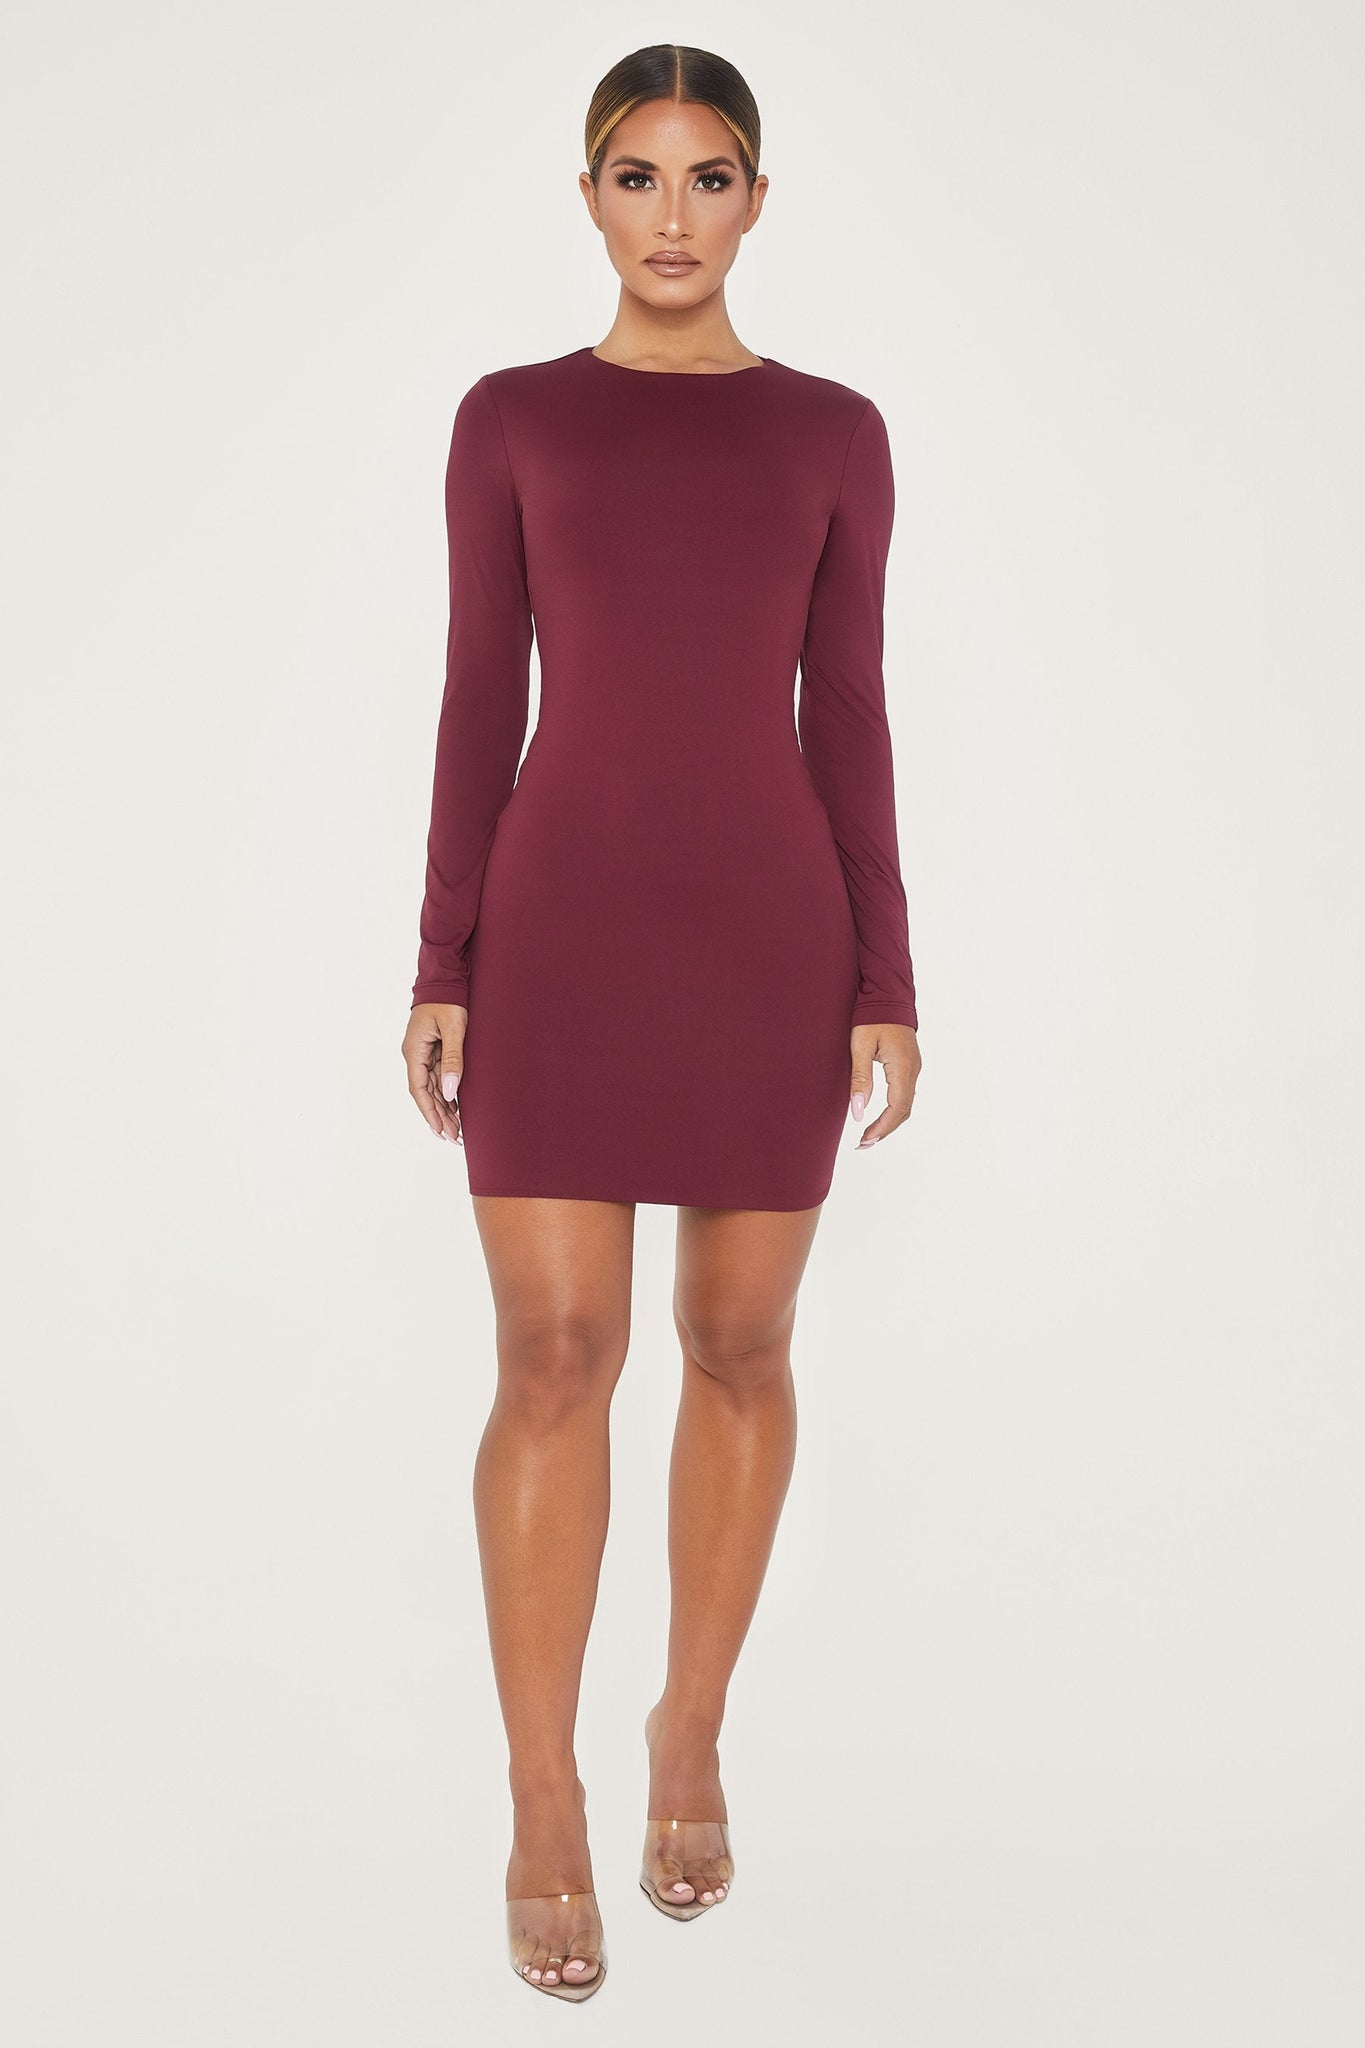 Rayne Long Sleeve Mini Dress - Burgundy - MESHKI